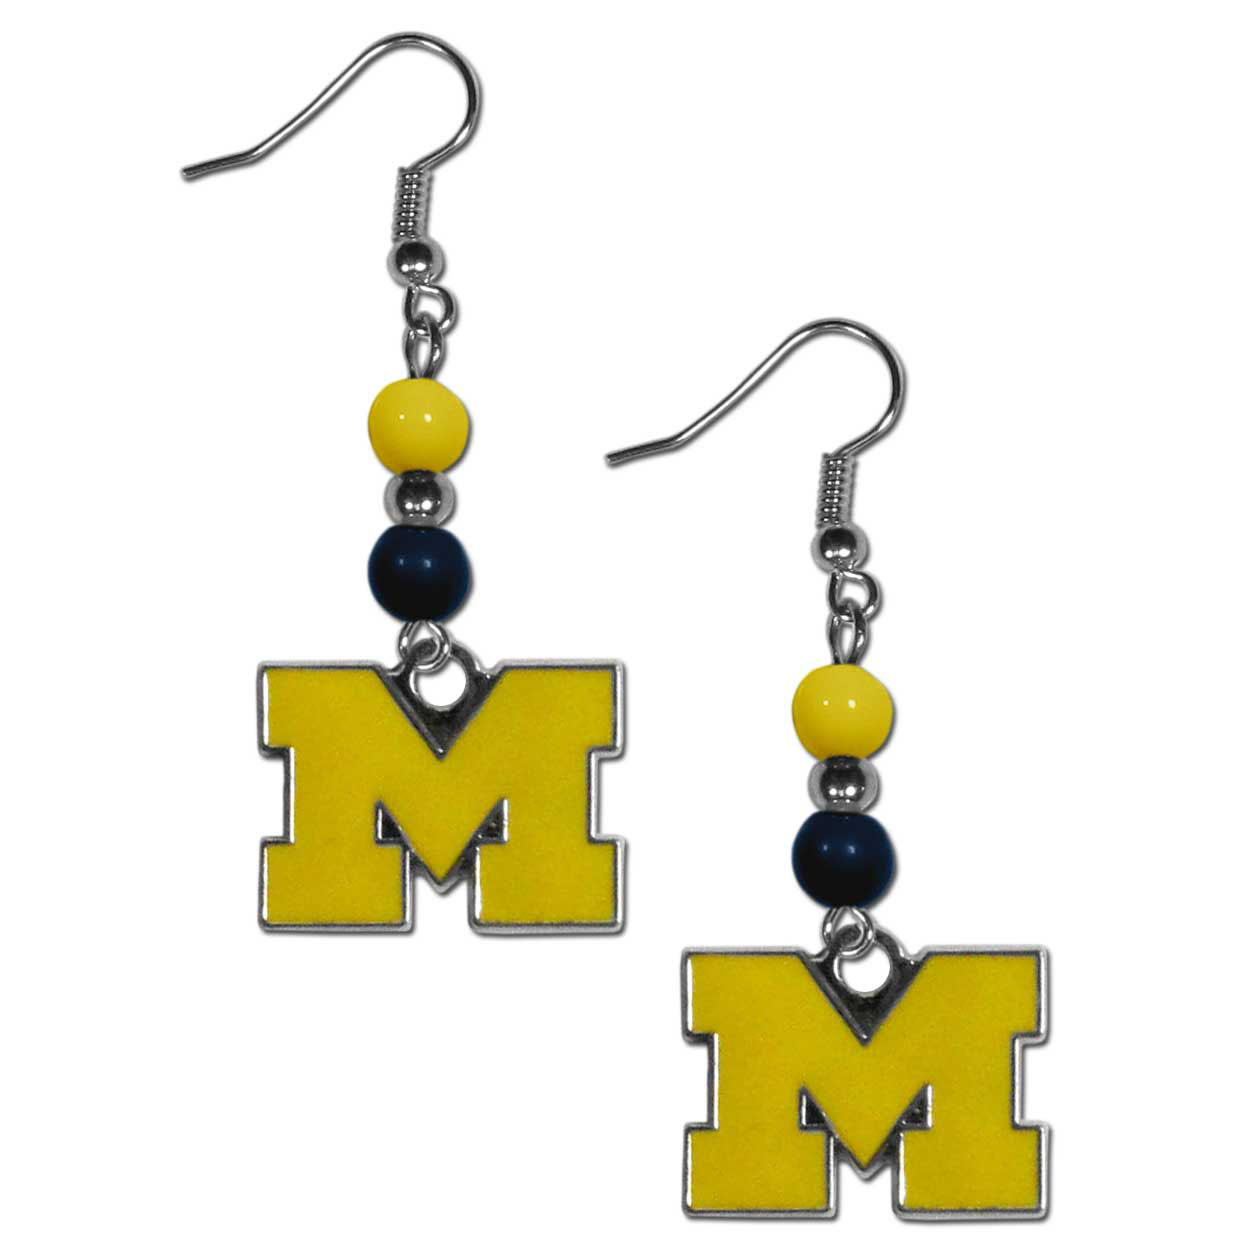 Michigan Wolverines Fan Bead Dangle Earrings - Love your team, show it off with our Michigan Wolverines bead dangle earrings! These super cute earrings hang approximately 2 inches and features 2 team colored beads and a high polish team charm. A must have for game day!